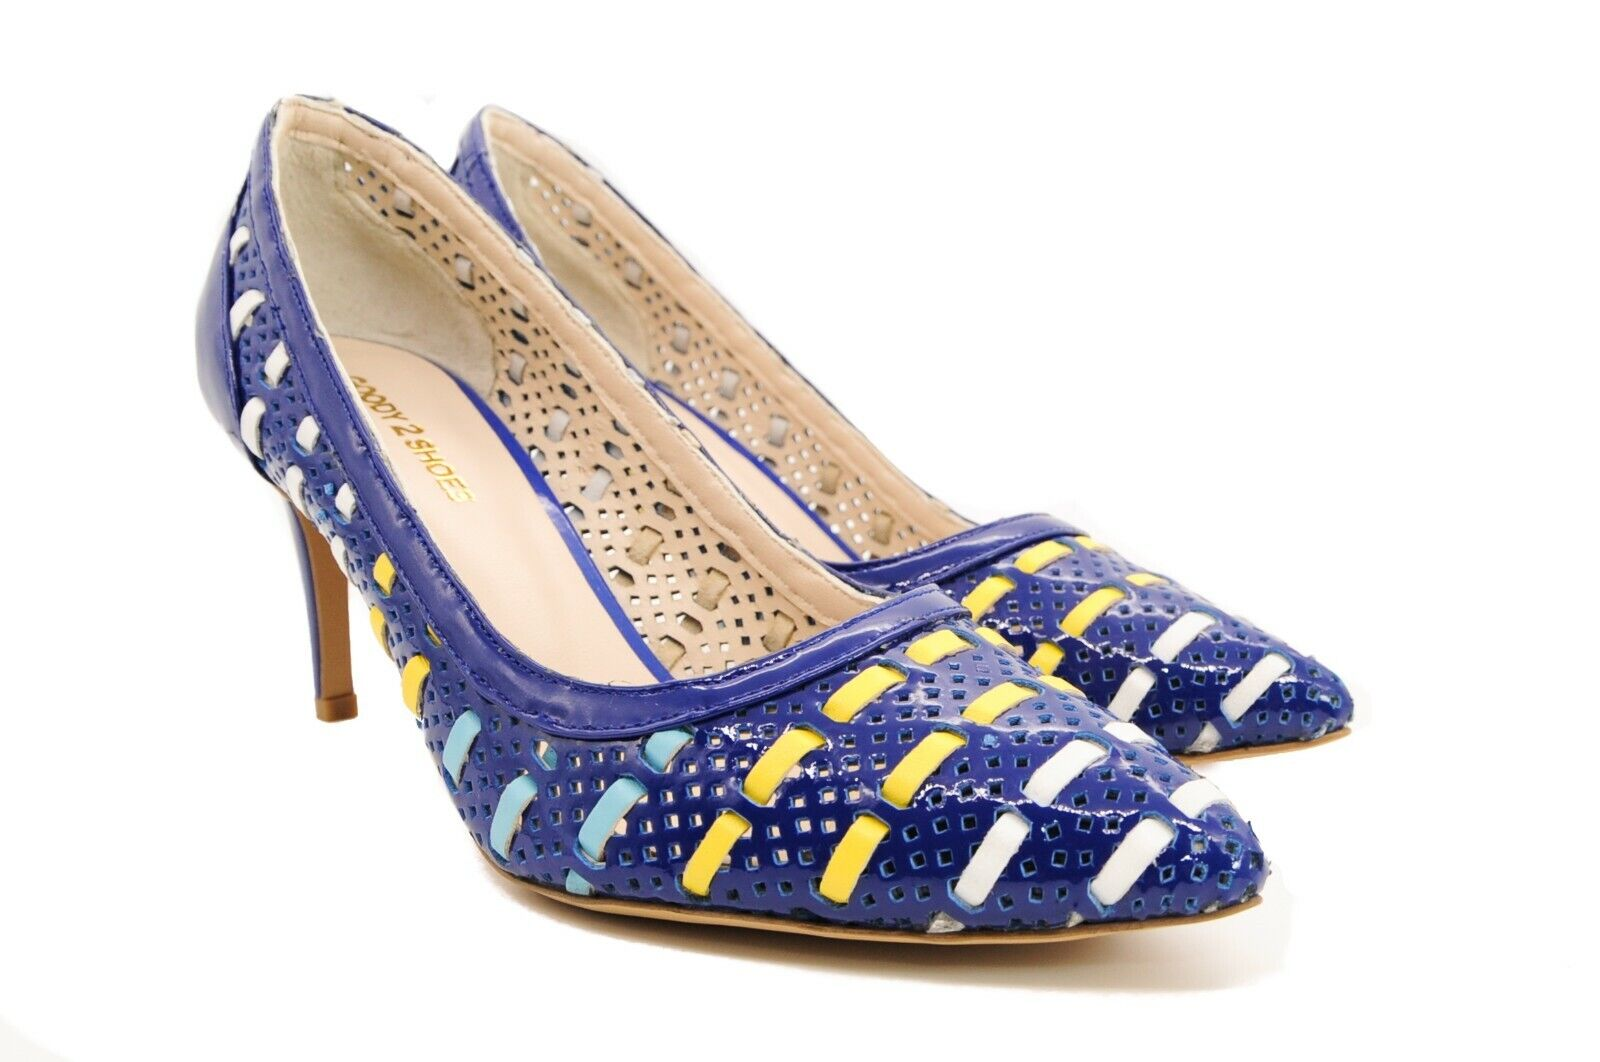 Goody2shoes Ladies' Patent Leather Court shoes bluee Mesh Stripe and High Heels